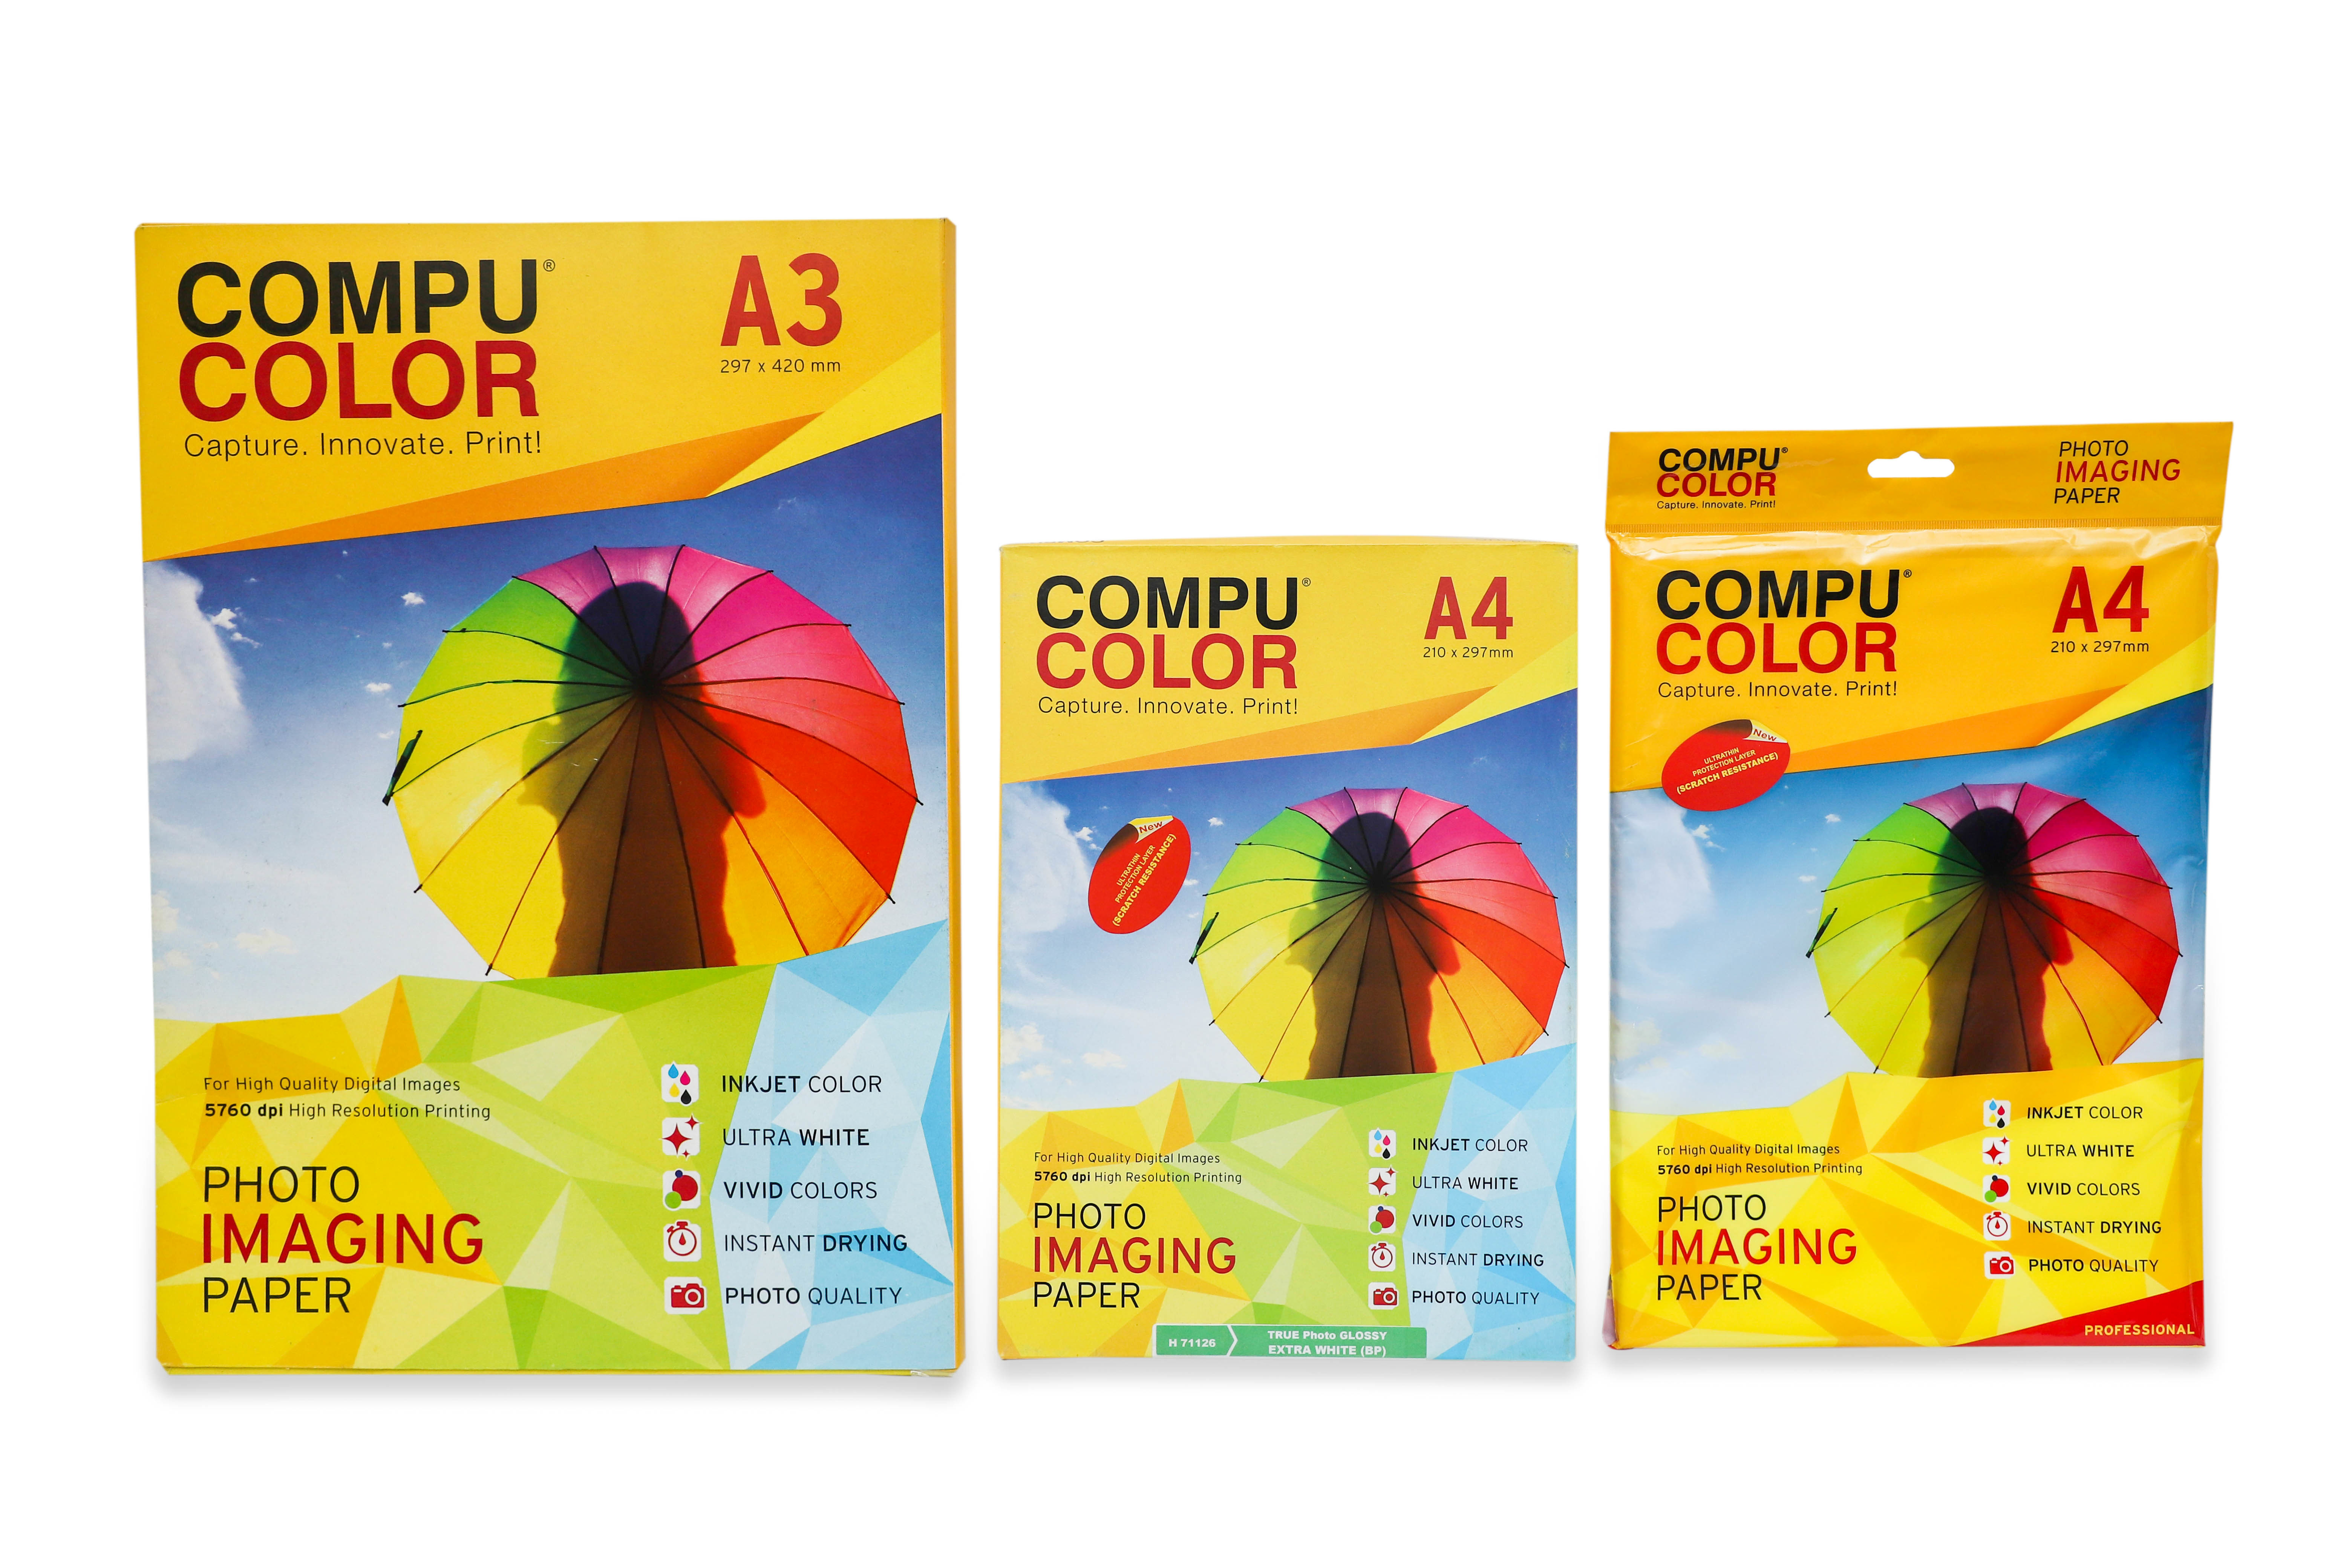 COMPU COLOR Photo Imaging Paper Glossy 270 gsm (A4) 50 sheets